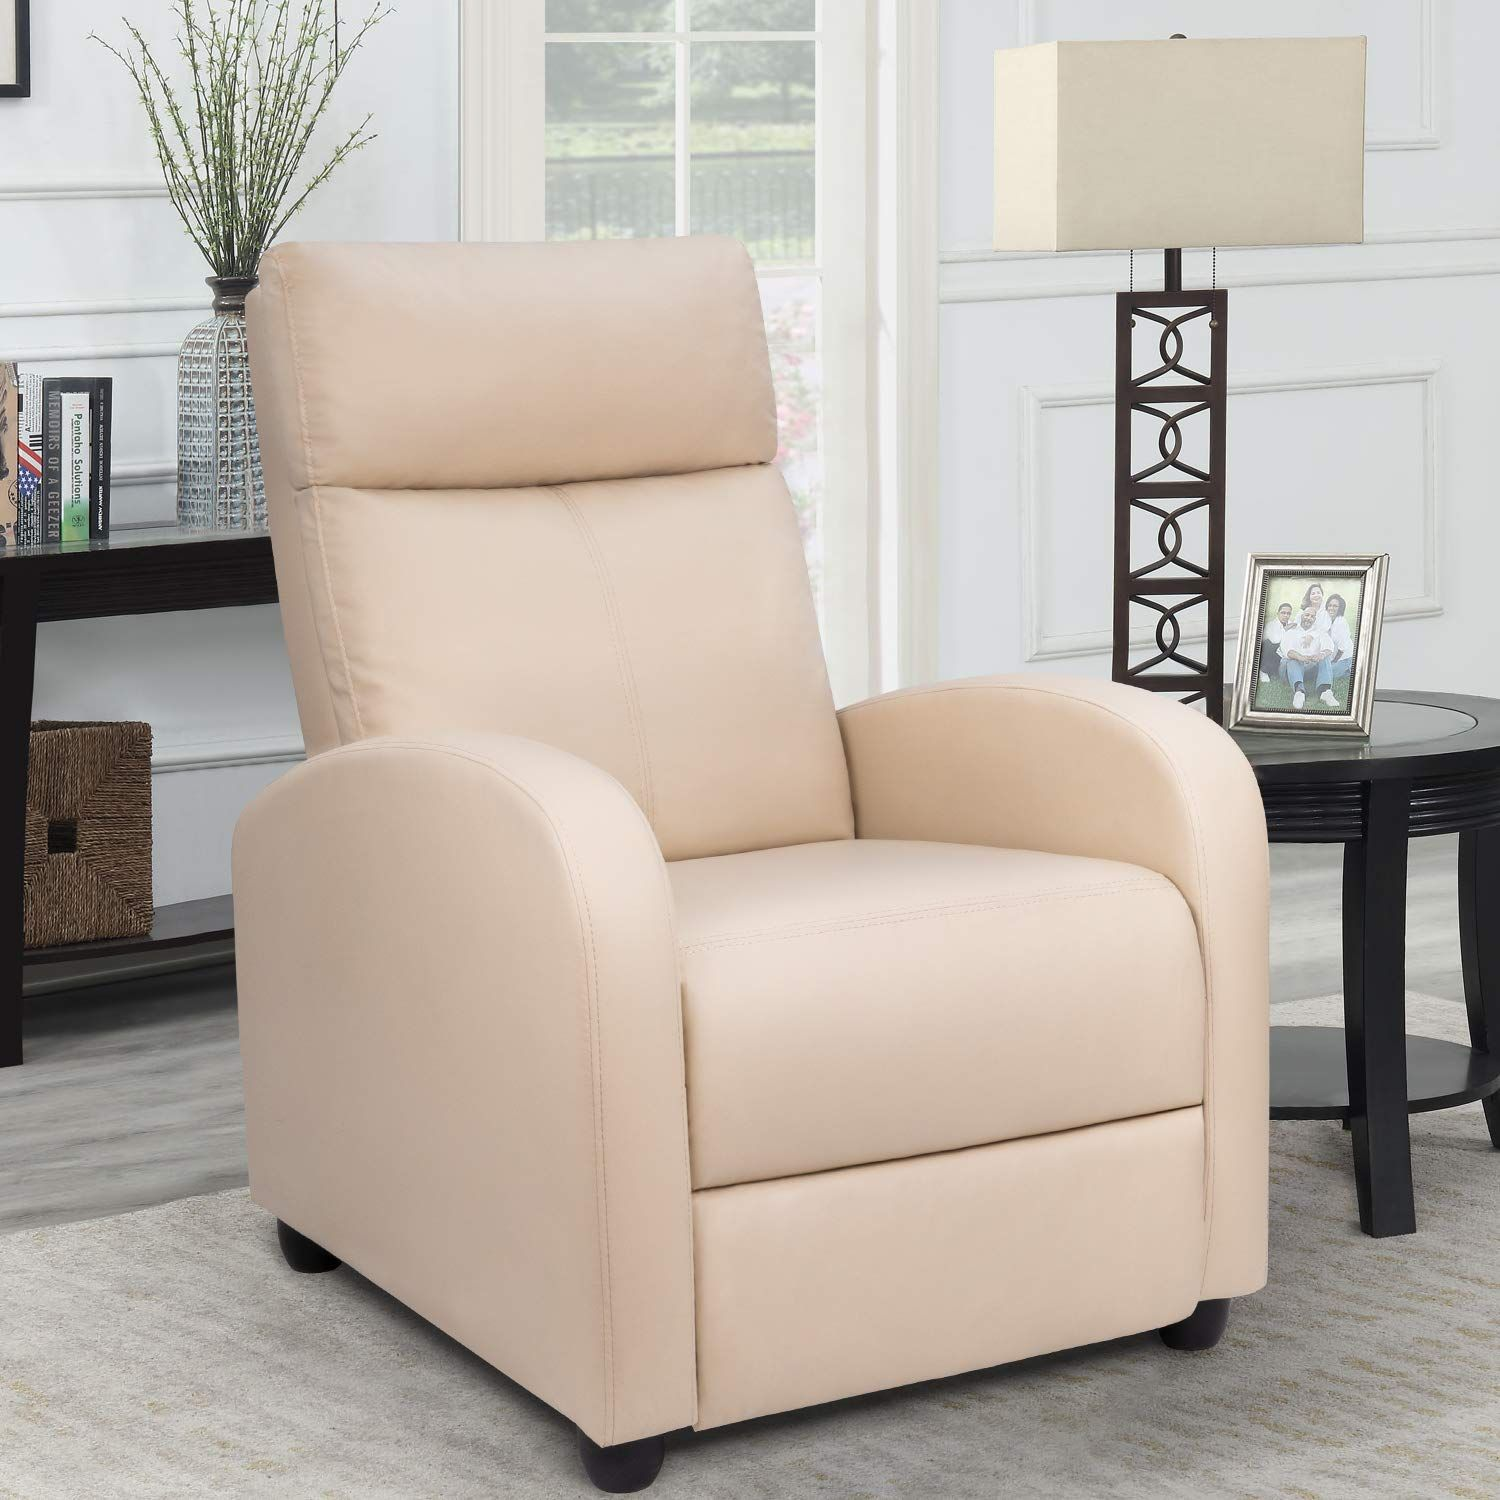 Homall Single Recliner Chair Padded Seat Pu Leather Living Room Sofa Recliner Modern Recliner Leather Sofa Living Room Living Room Leather Home Theater Seating